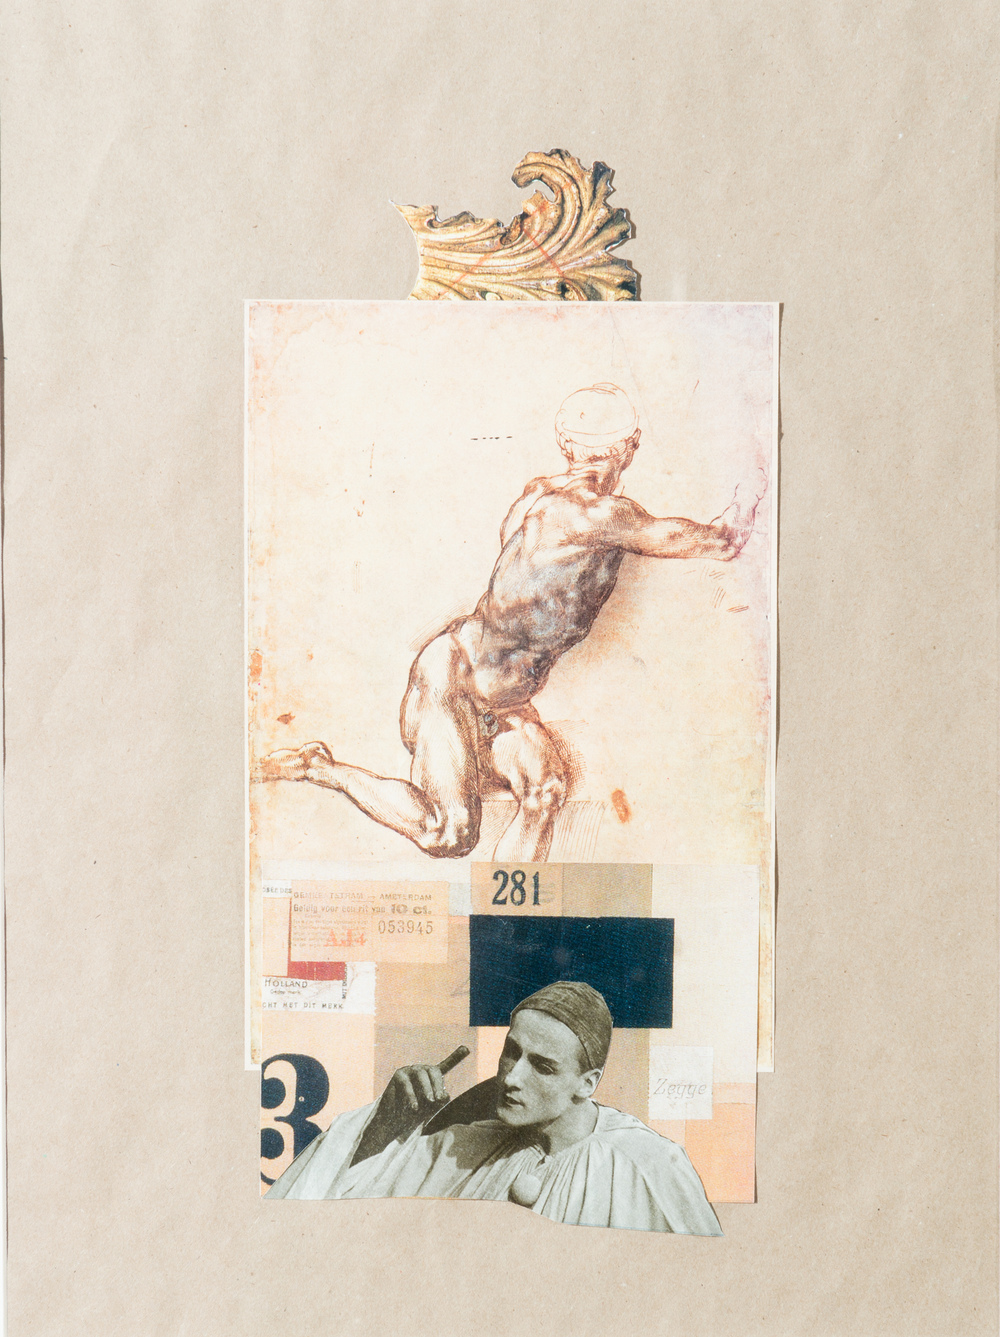 TL-047, Talk to me (four letters about love), collage, 2015, 19x23, $575